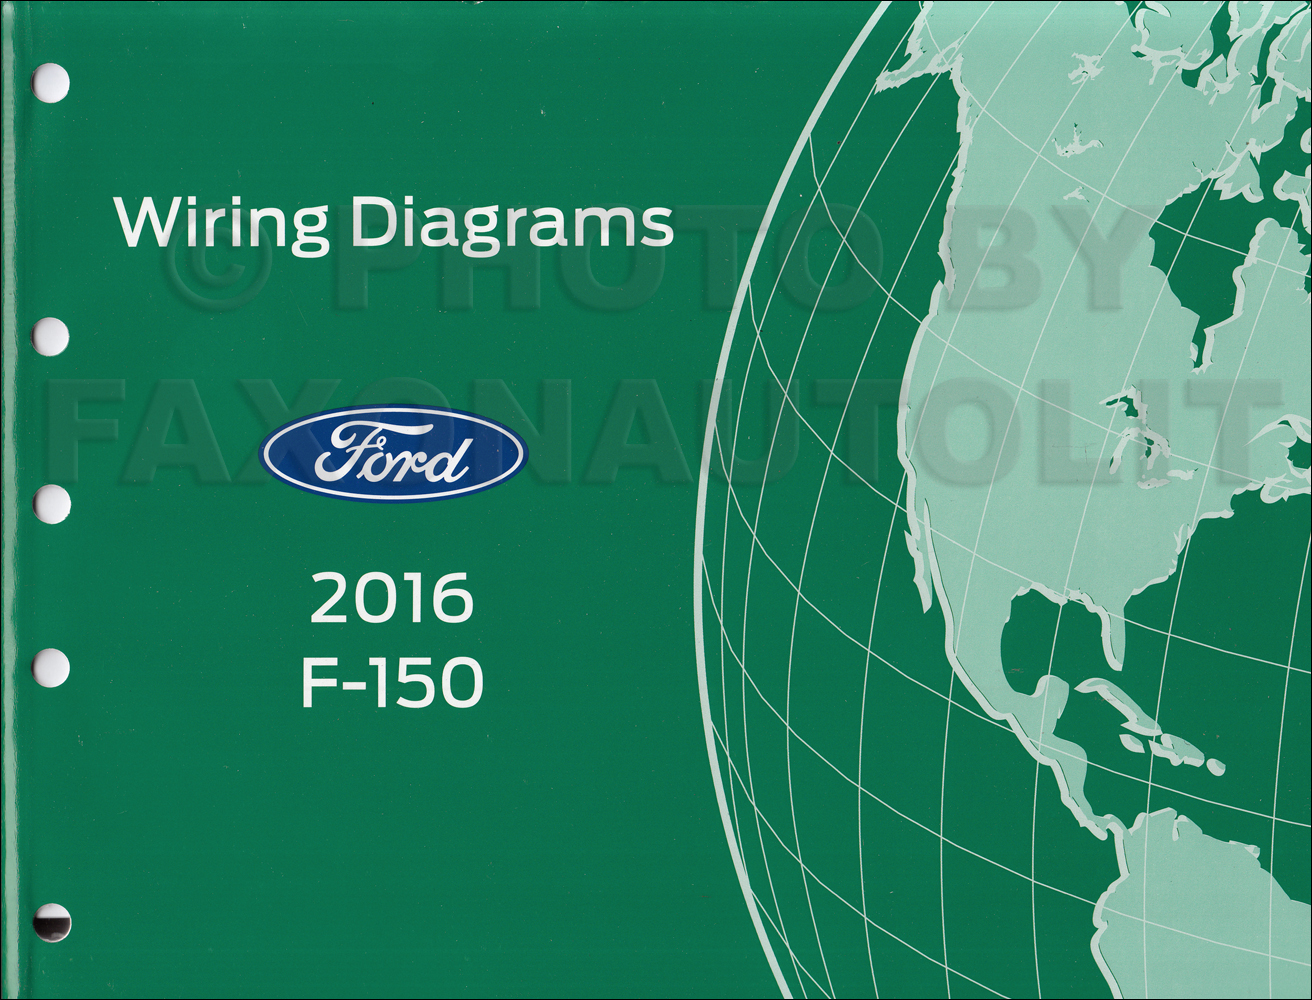 2015 Ford F150 Wiring Diagram Photo Manual - DIY Wiring Diagrams •